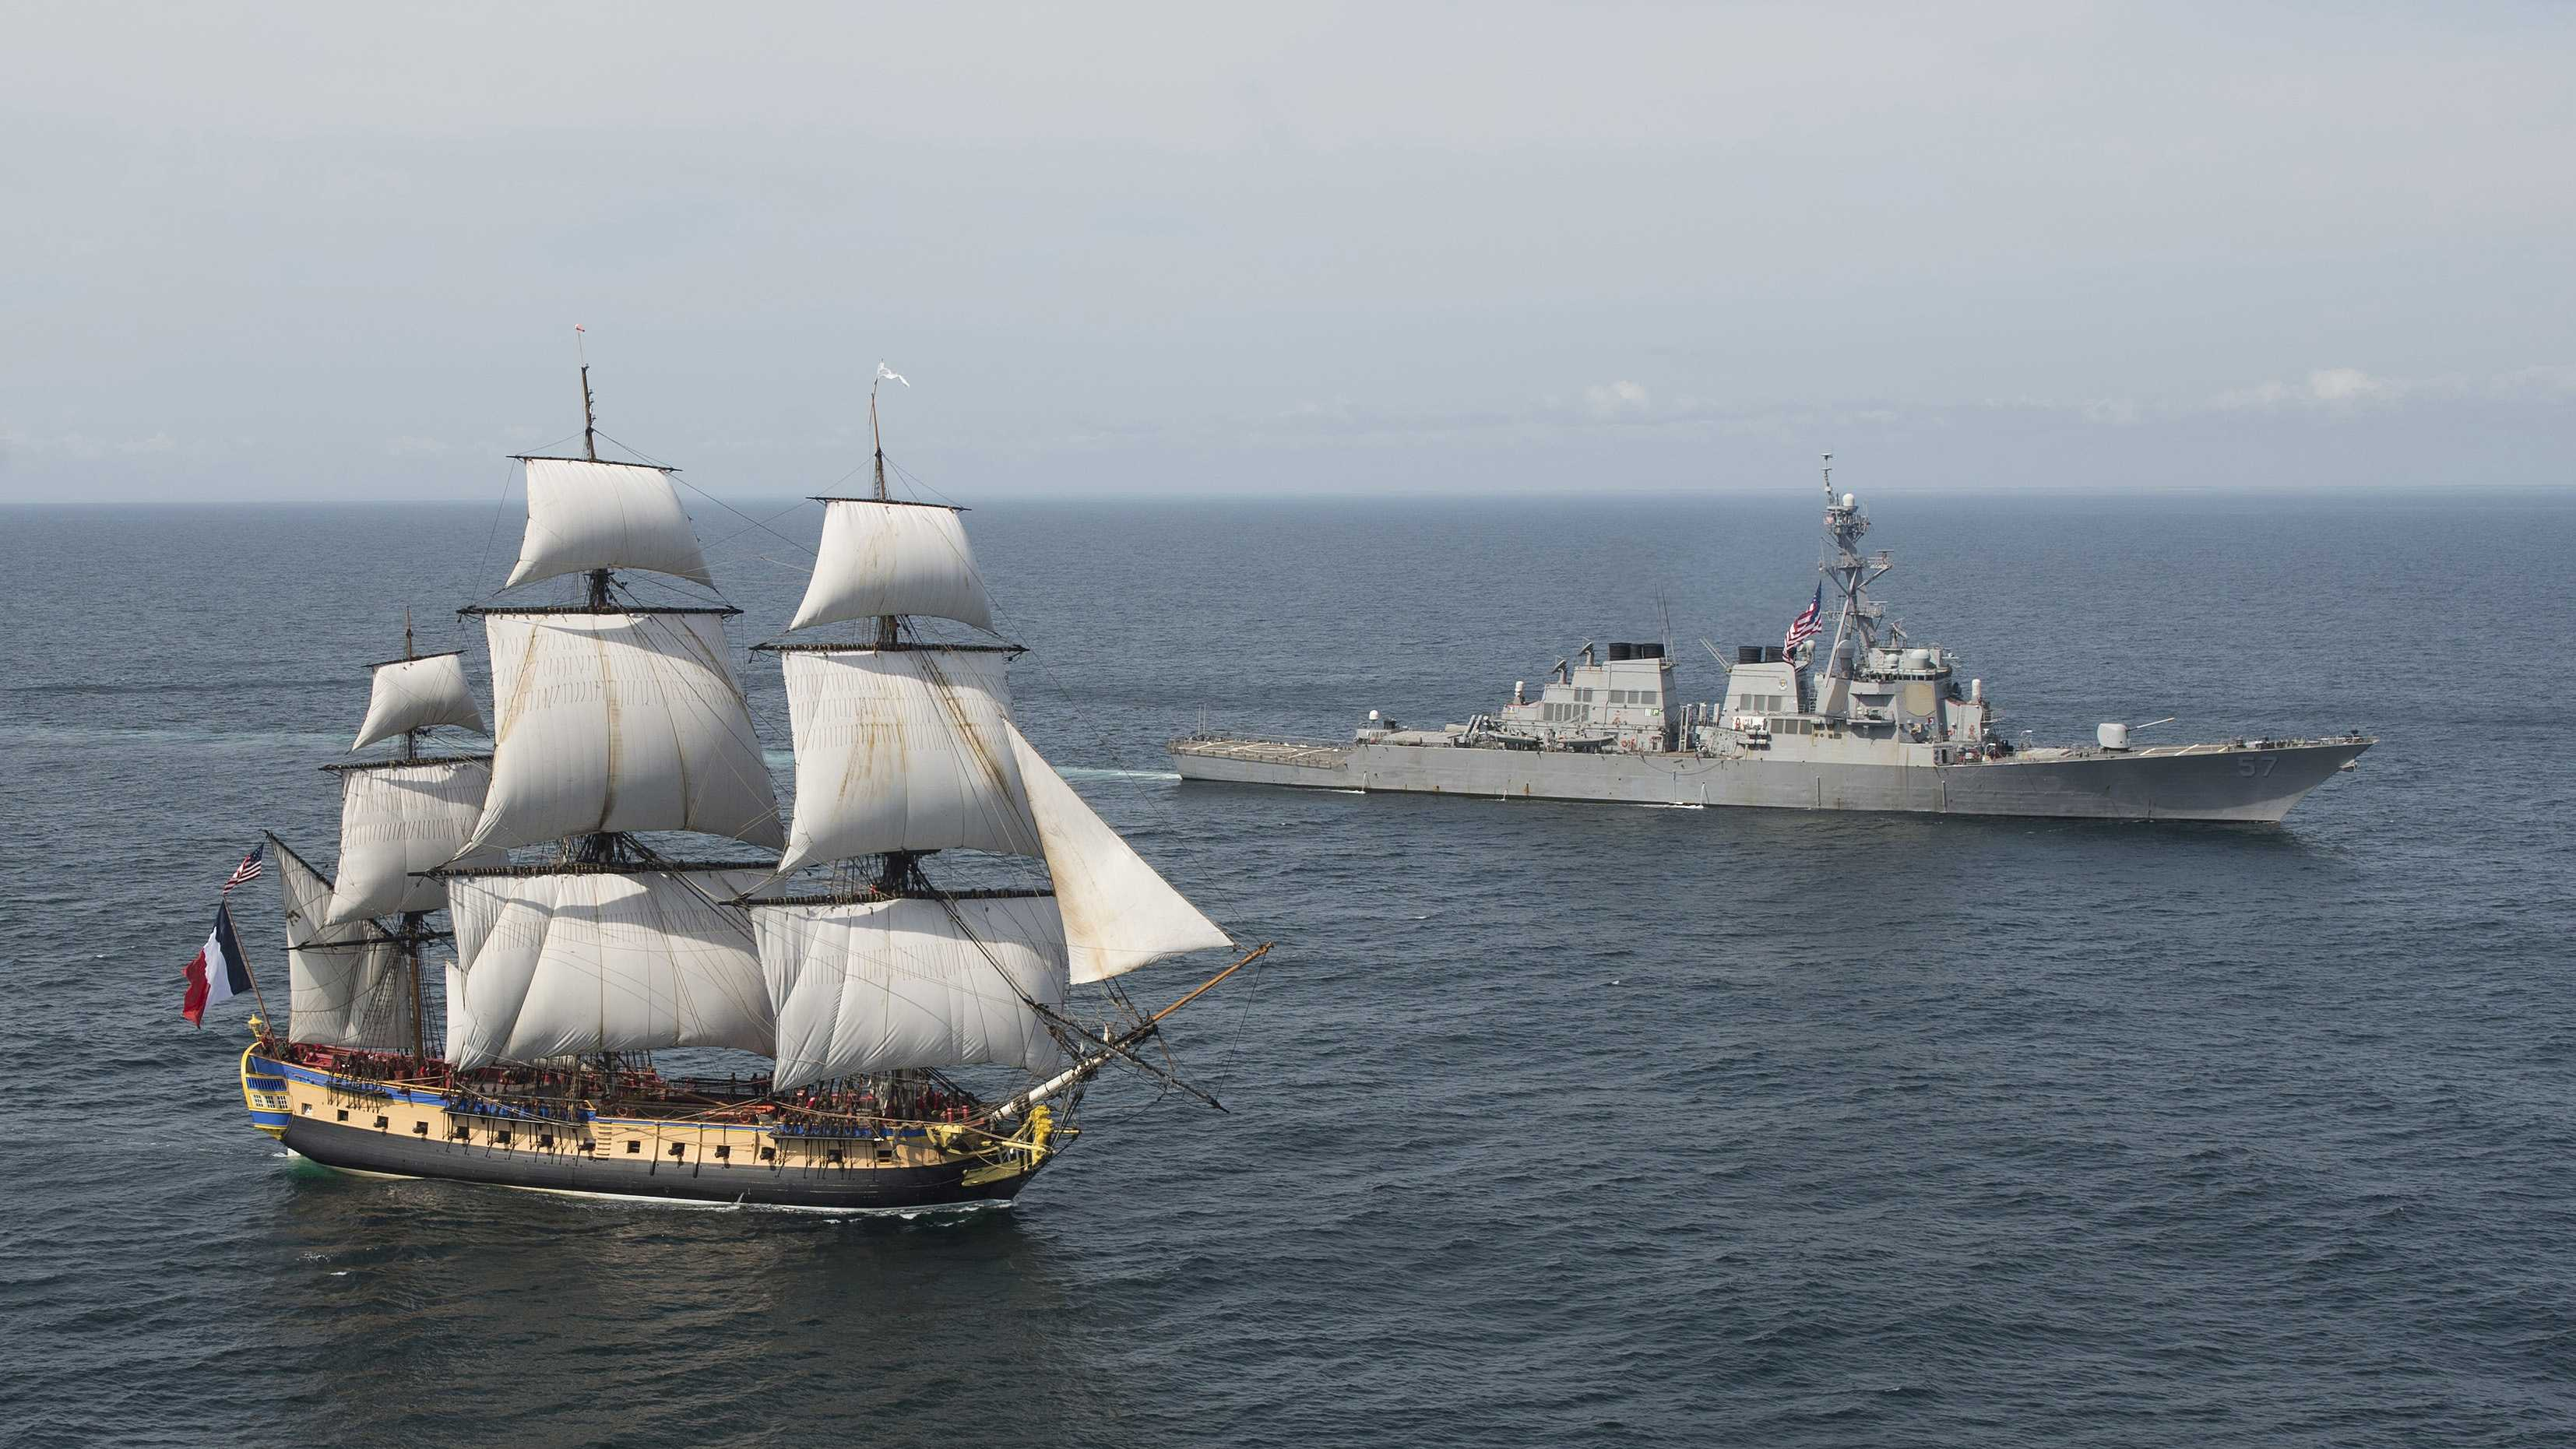 In this Tuesday, June 2, 2015 image provided by the U.S. Navy, the Arleigh Burke-class guided-missile destroyer USS Mitscher, right, welcomes the French tall ship replica Hermione in the vicinity of the Battle of Virginia Capes off the East Coast of the United States.